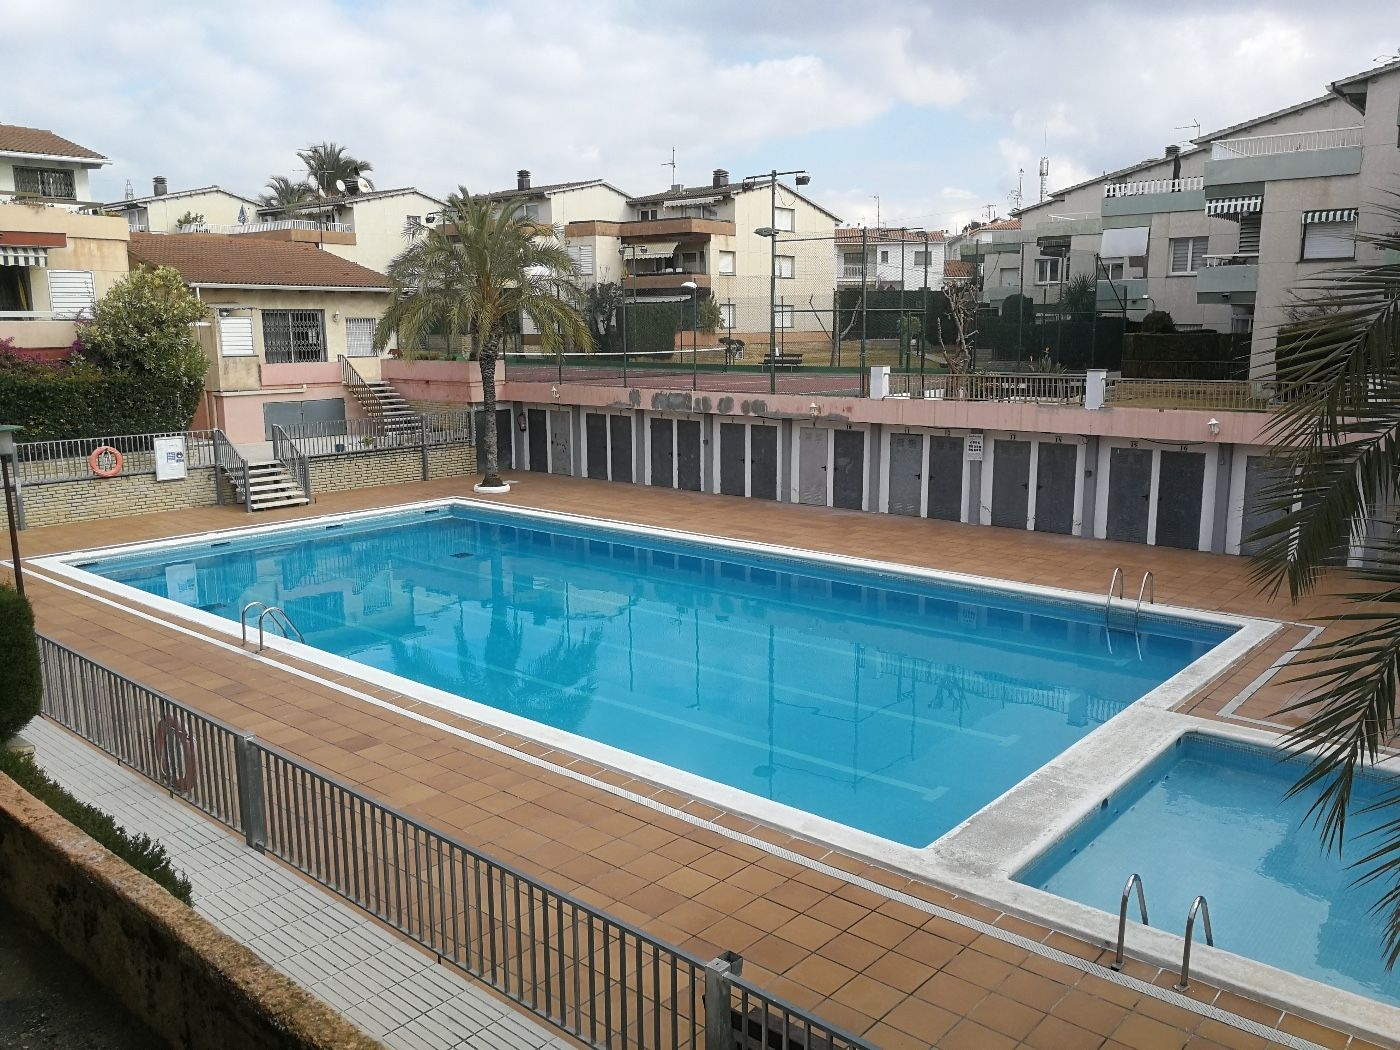 Location Appartement  Coma-ruga. Con terraza,piscina. junto a mar